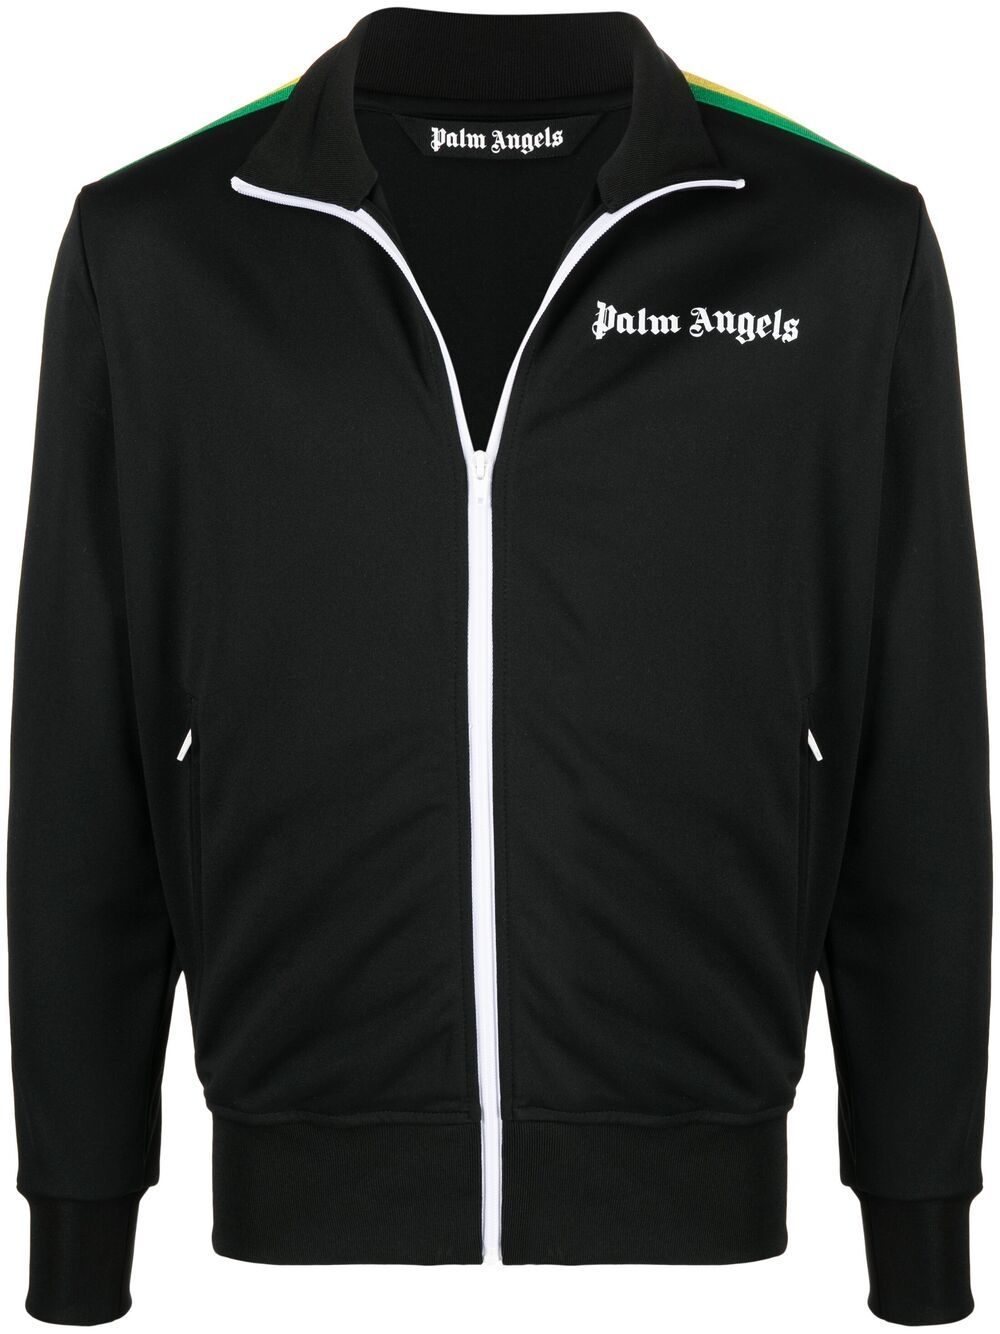 PALM ANGELS Exodus Track Jacket Black